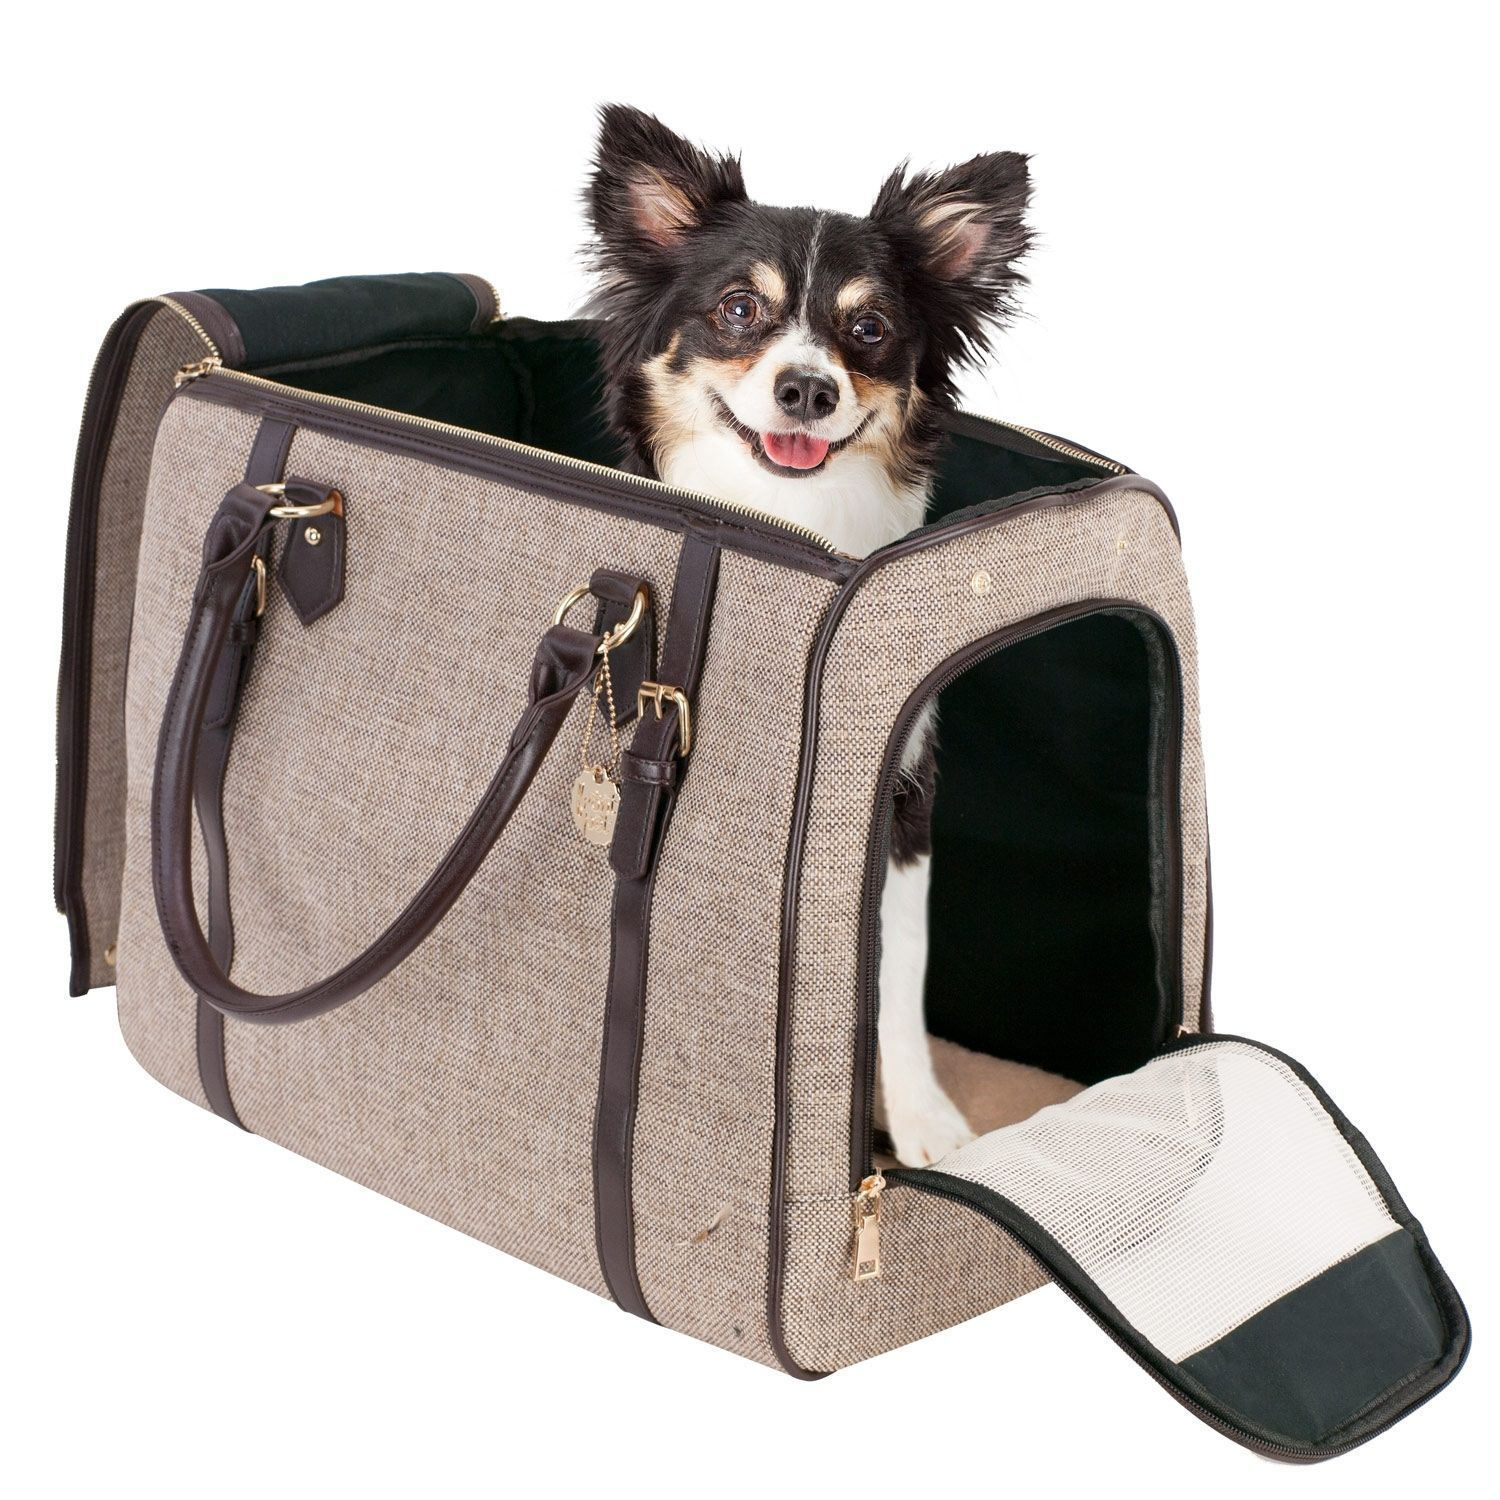 Travel With Your Pet In Style!<br>We at Frontpet strive in creating the most comfortable experience for both you and your pet. Our luxury pet carrier was designed by our expert engineers to make your ...